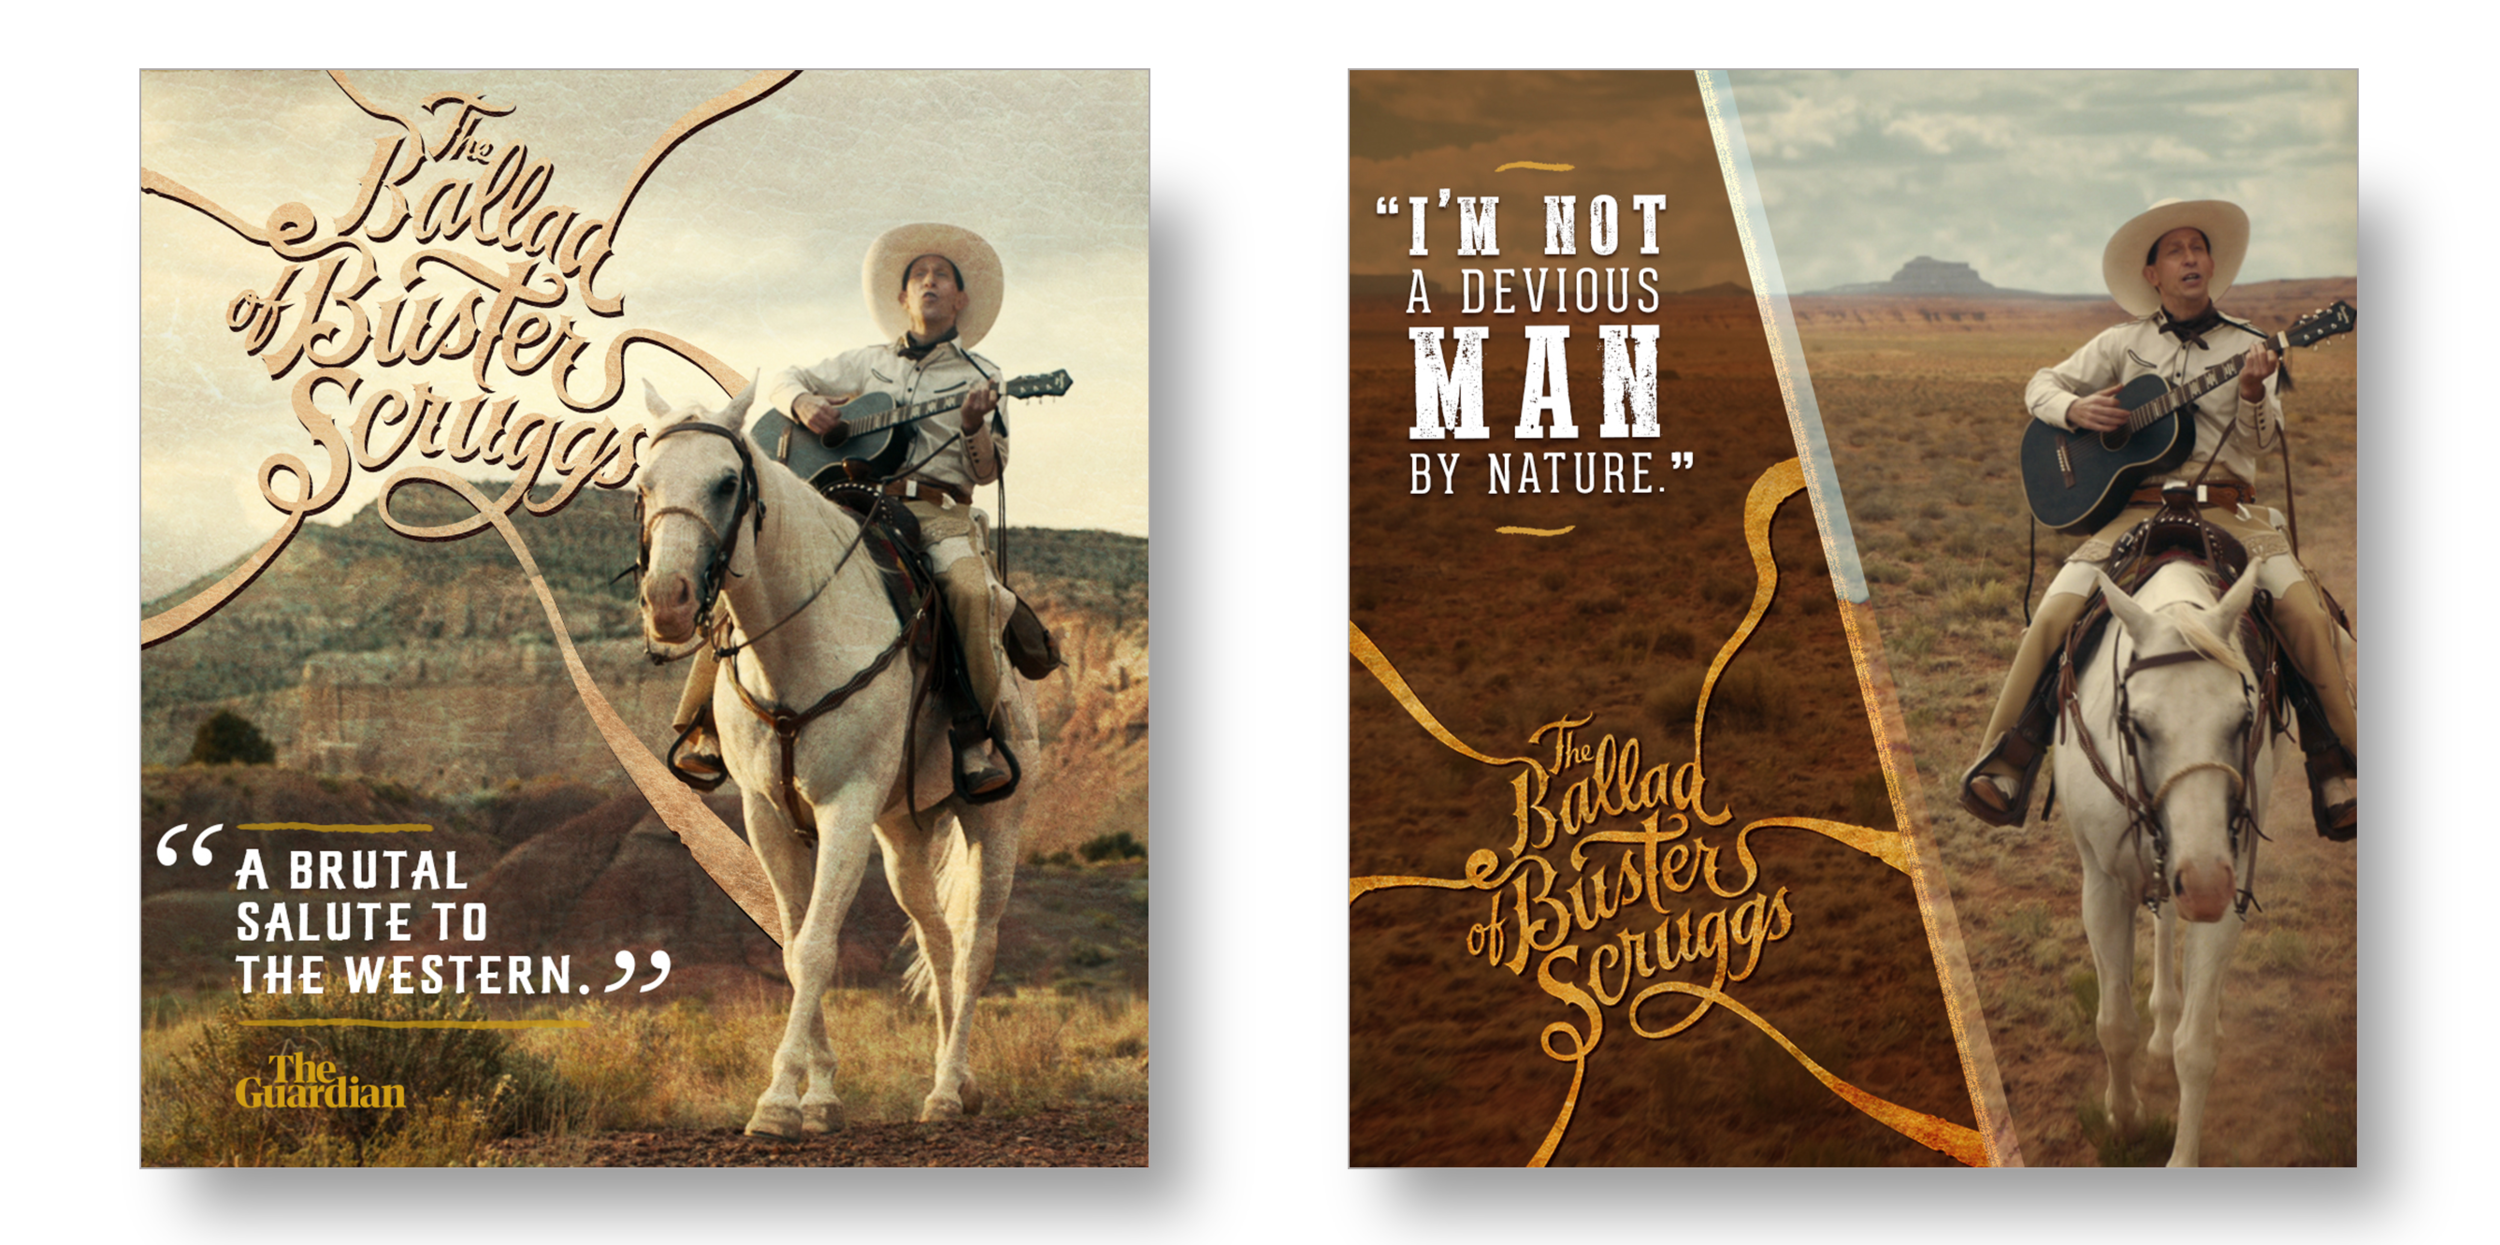 BUSTER SCRUGGS GRAPHIC 2.png